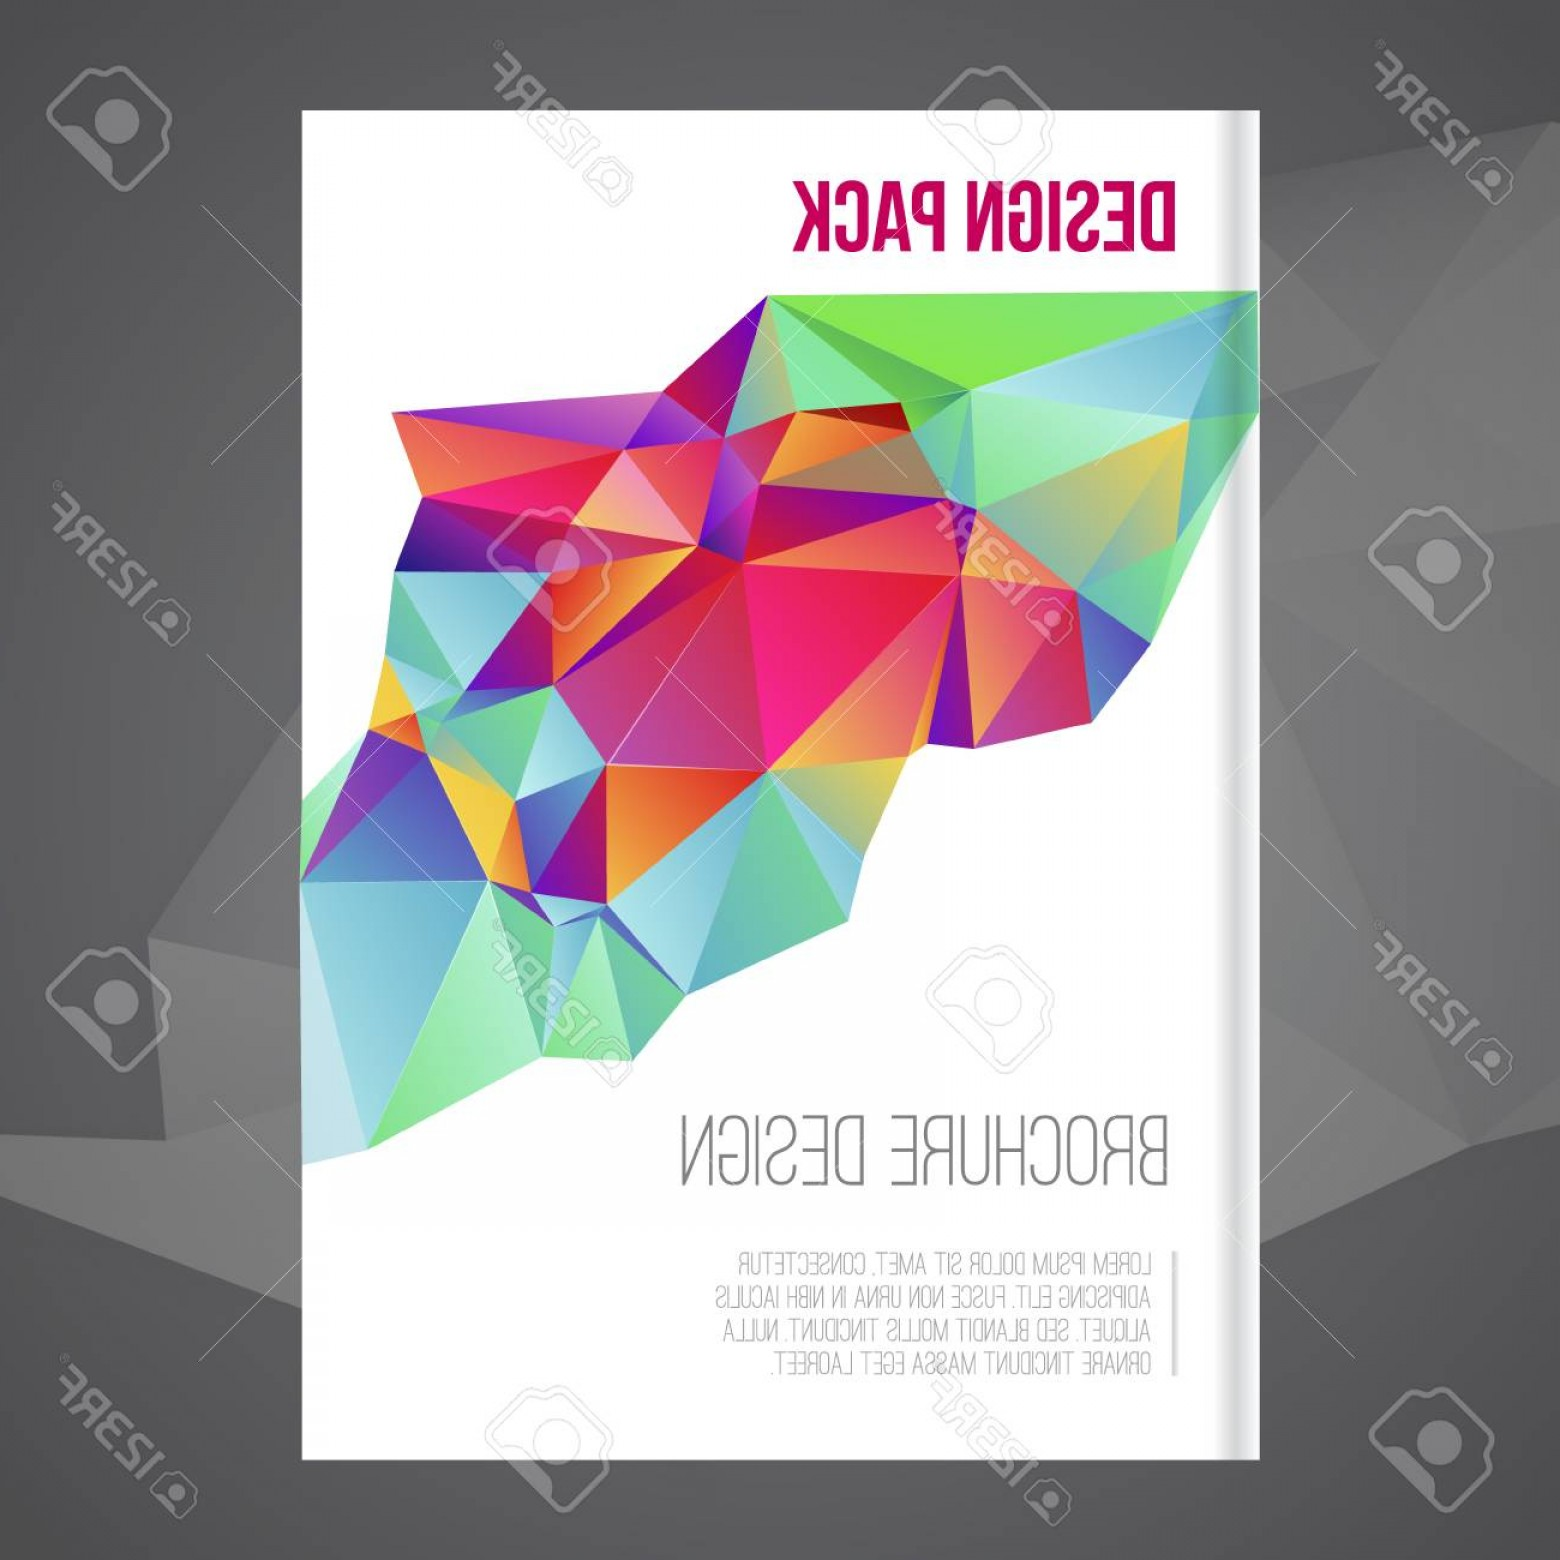 Vector Brochure Cover Designs: Photostock Vector Vector Brochure Cover Design Template With Colorful Abstract Geometric Shape Triangle Background For